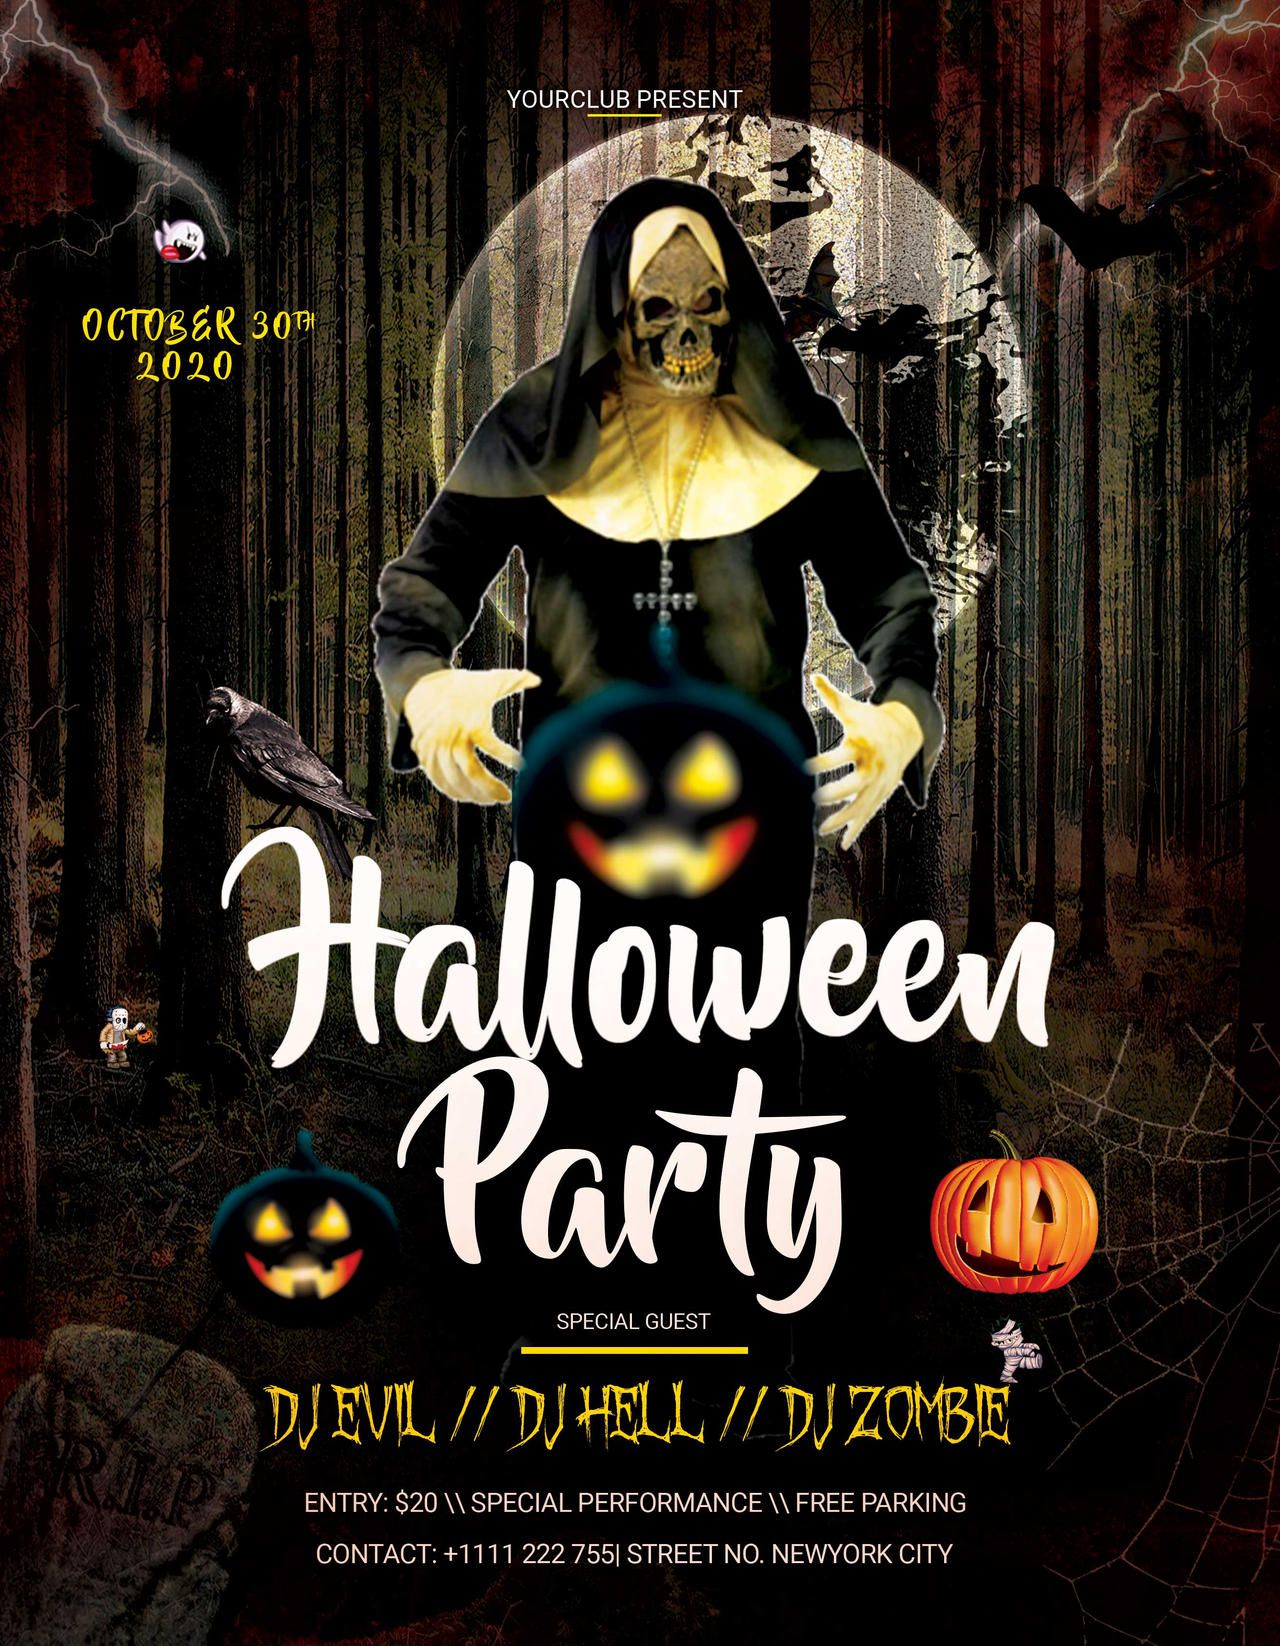 006 Excellent Free Halloween Party Flyer Template Inspiration  TemplatesFull